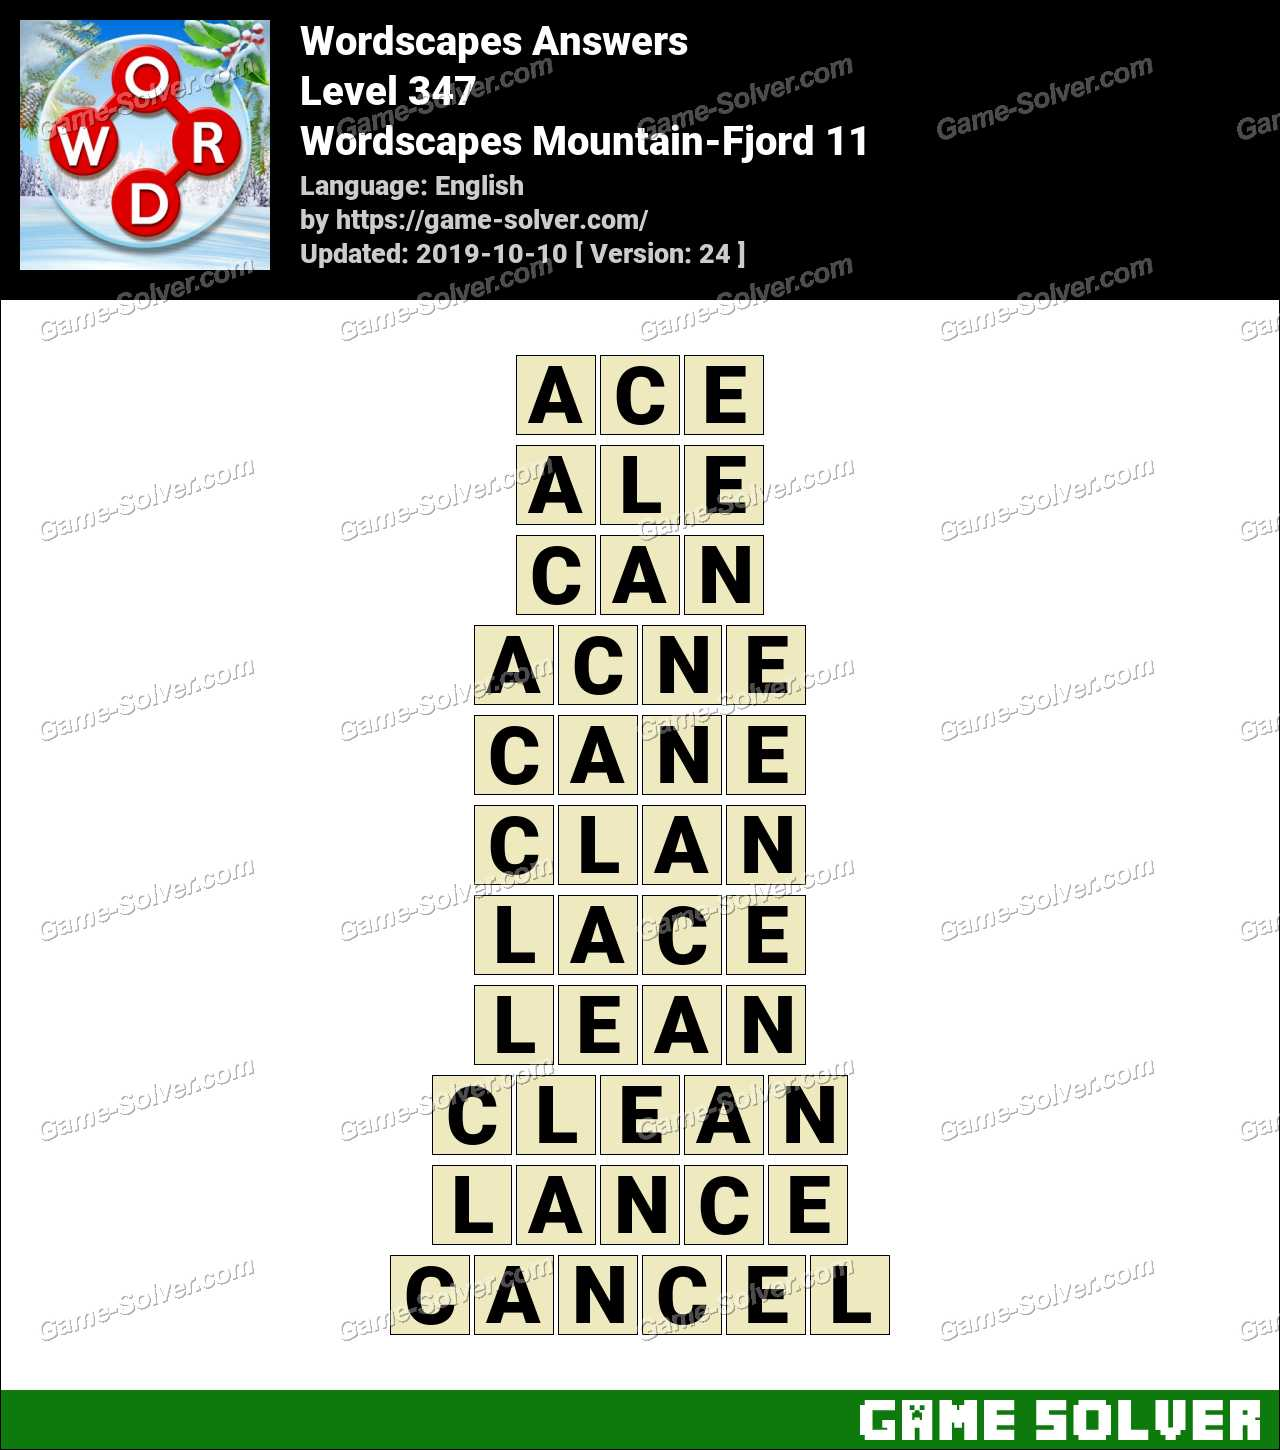 Wordscapes Mountain-Fjord 11 Answers